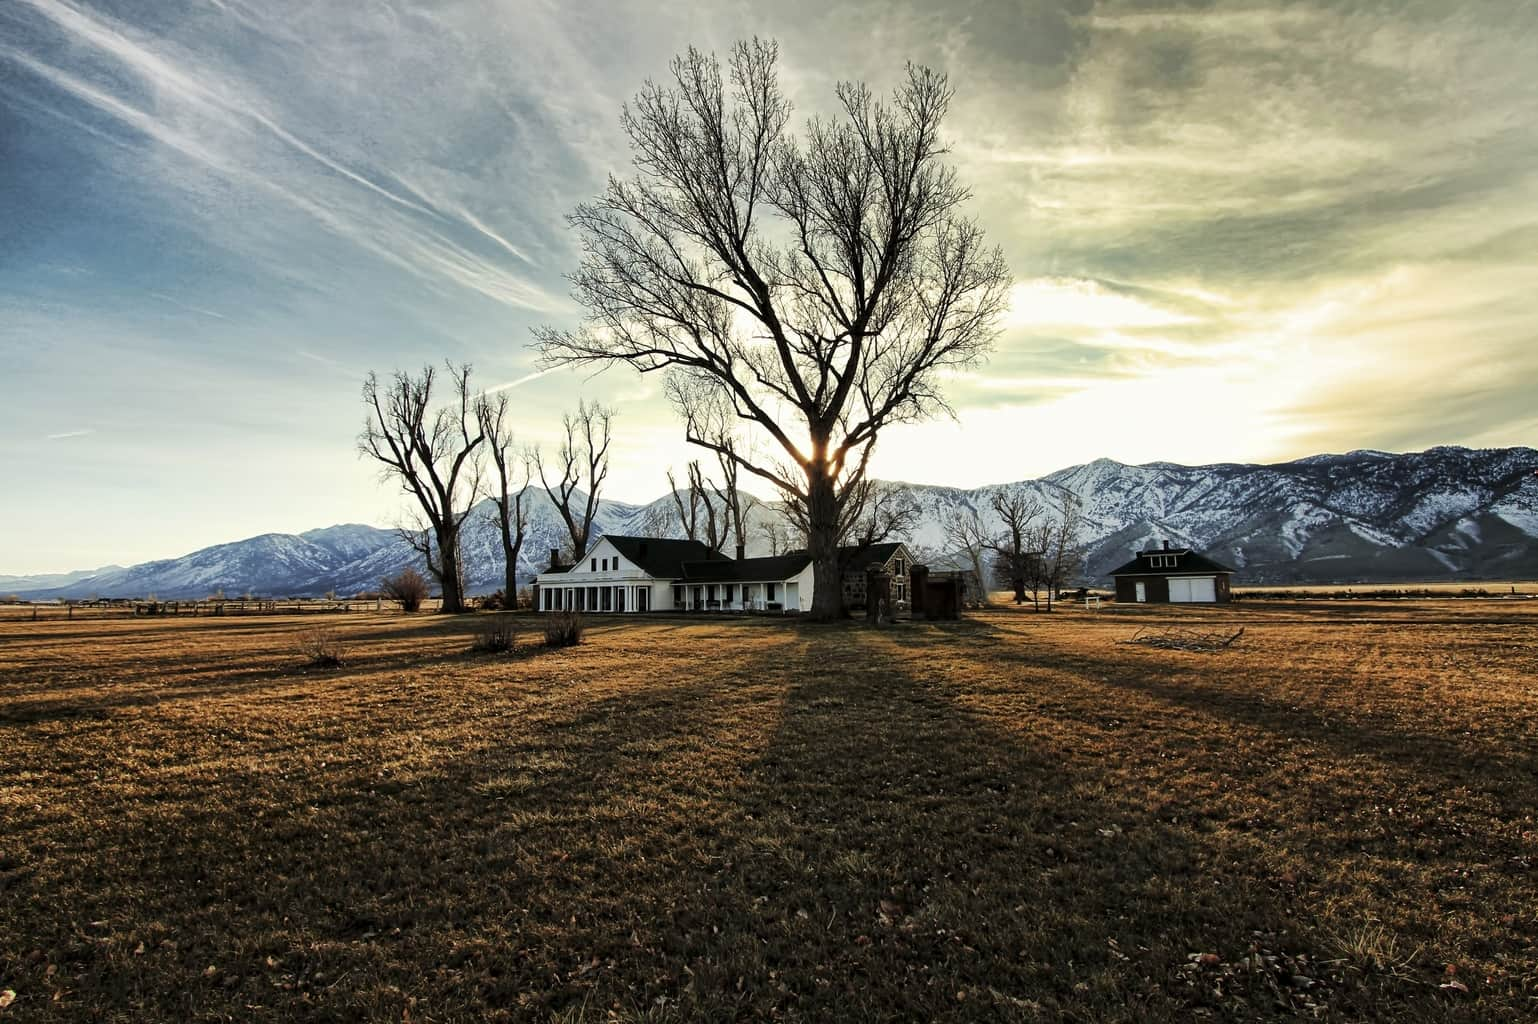 Do you love to travel and explore historical places? Carson Valley, Nevada is a prime location for both endeavors.  Located only 45 minutes south of Reno and 12 miles east of South Lake Tahoe, Carson Valley is no ordinarly place to visit. In addition to offering prestine mountain top views, charming restaurants, and legendary adventures for ages, the valley is home to more than ten historical sites and places of interest and explore.